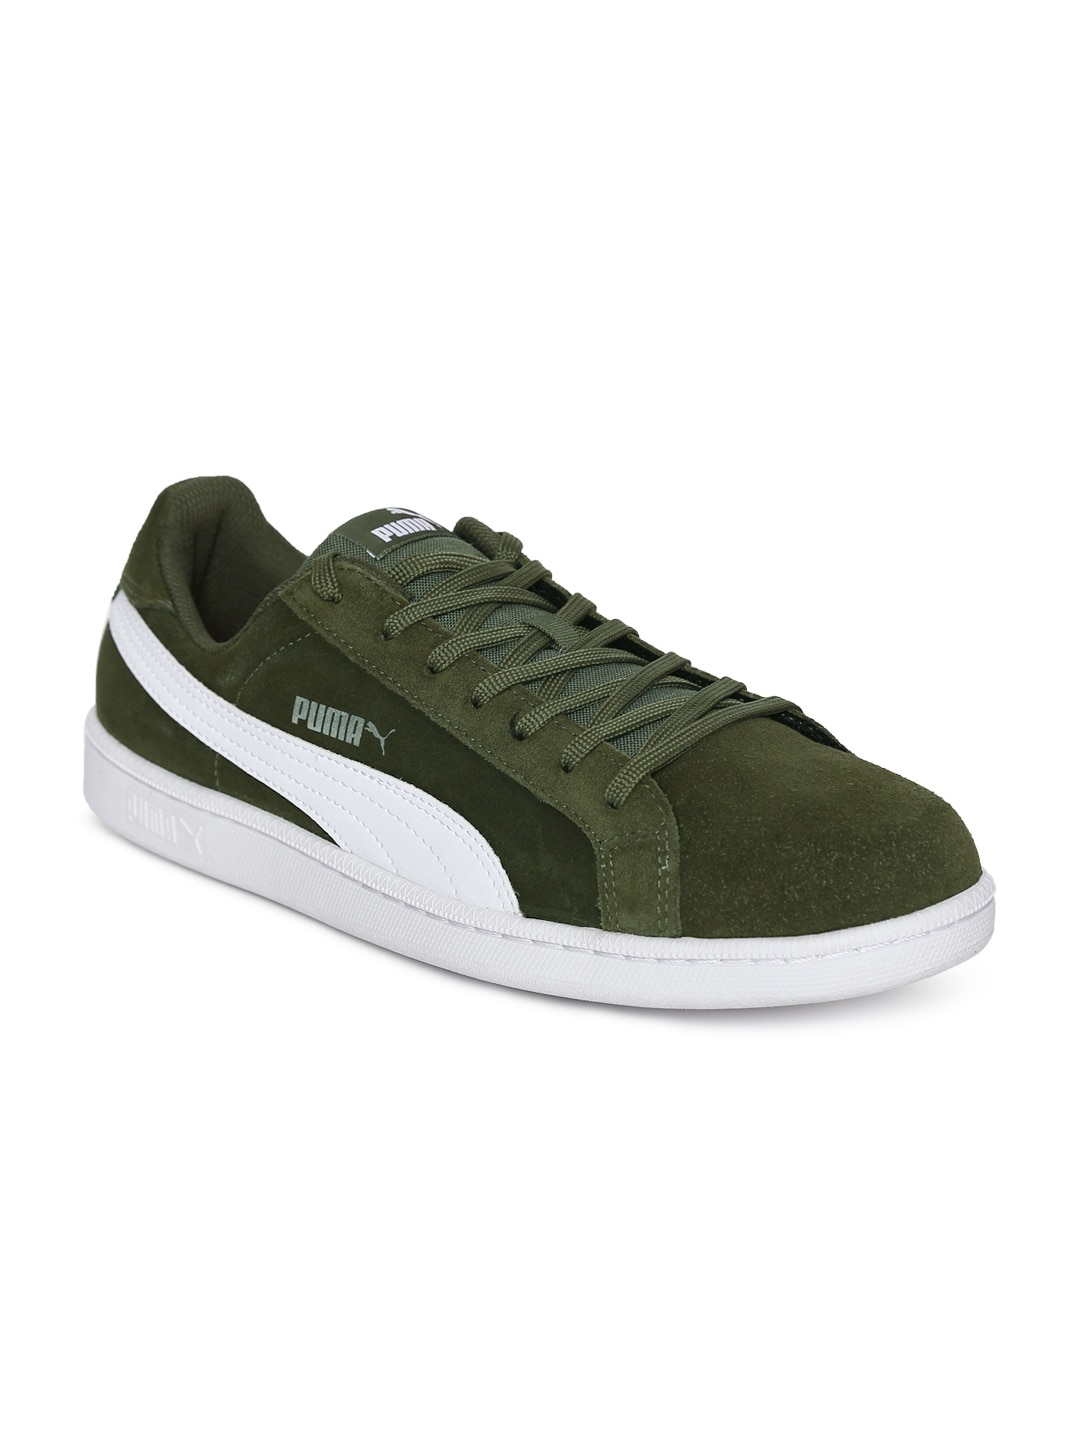 Puma Men Olive Green Smash SD Sneakers 7d5c0001f